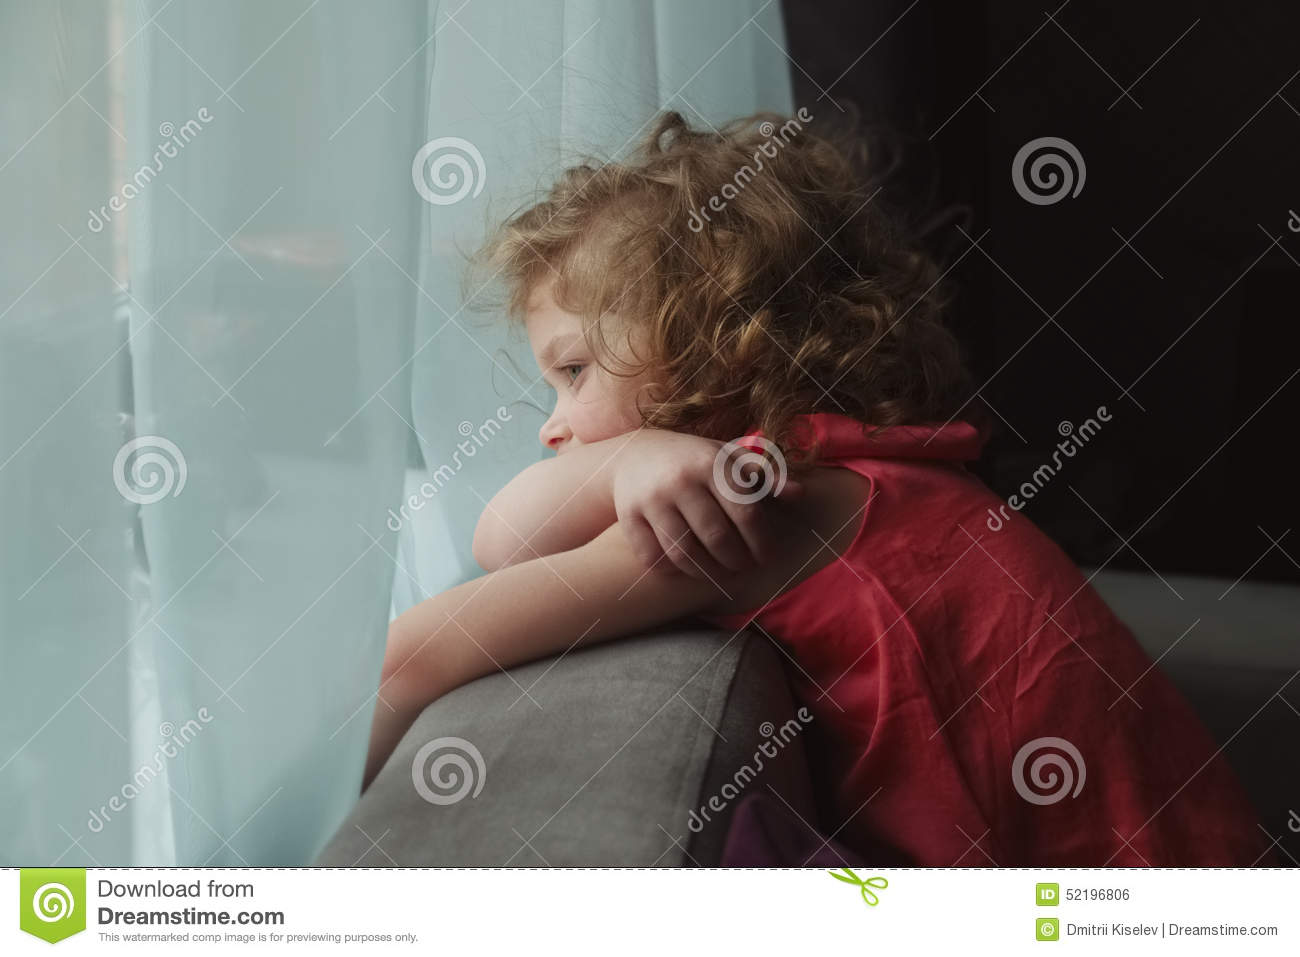 Girl Waiting For Someone And Looking Out The Window Stock Photo